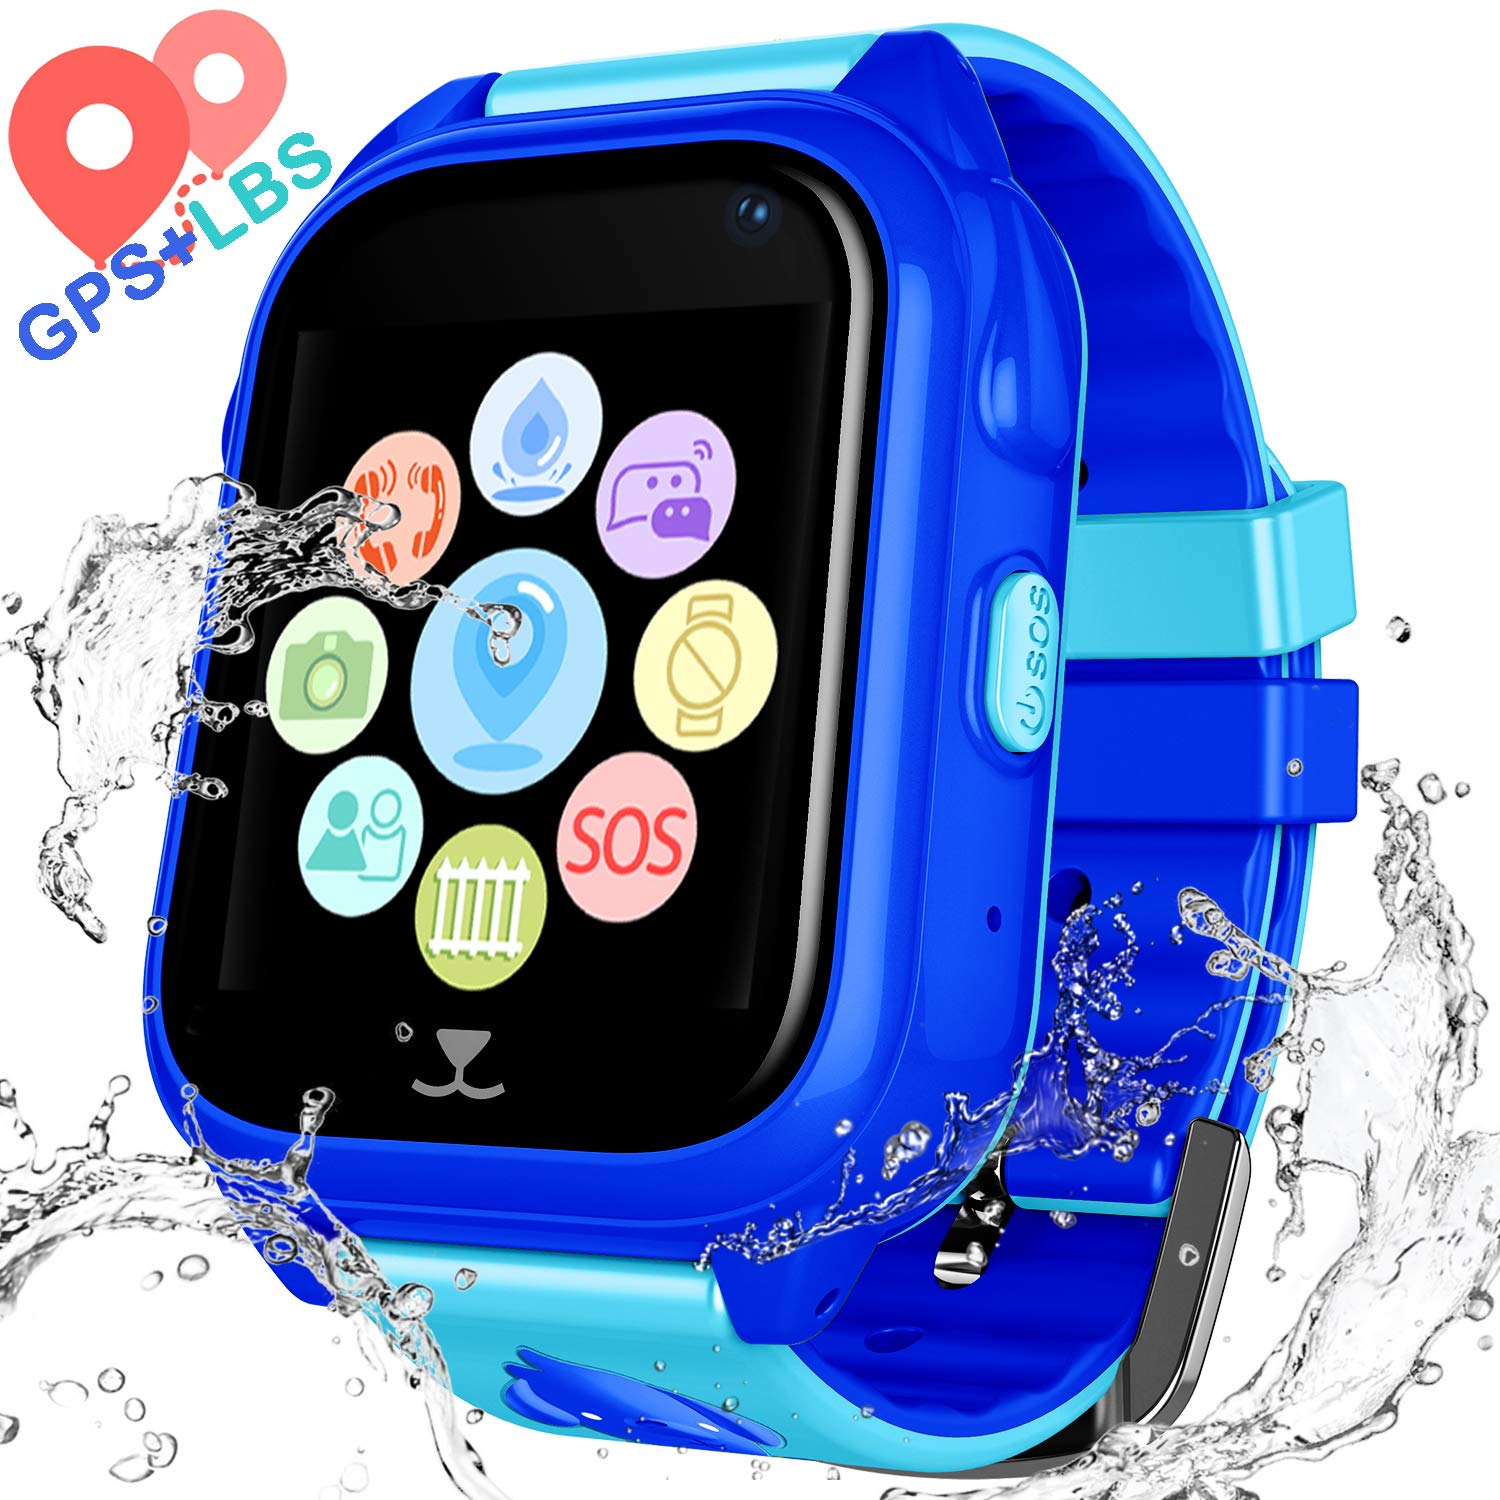 Kids Waterproof Smart Watch Phone – Children Water Resistant GPS Tracker Watch with Call Talkie Walkie Games Sports Wristband for Boys Girls